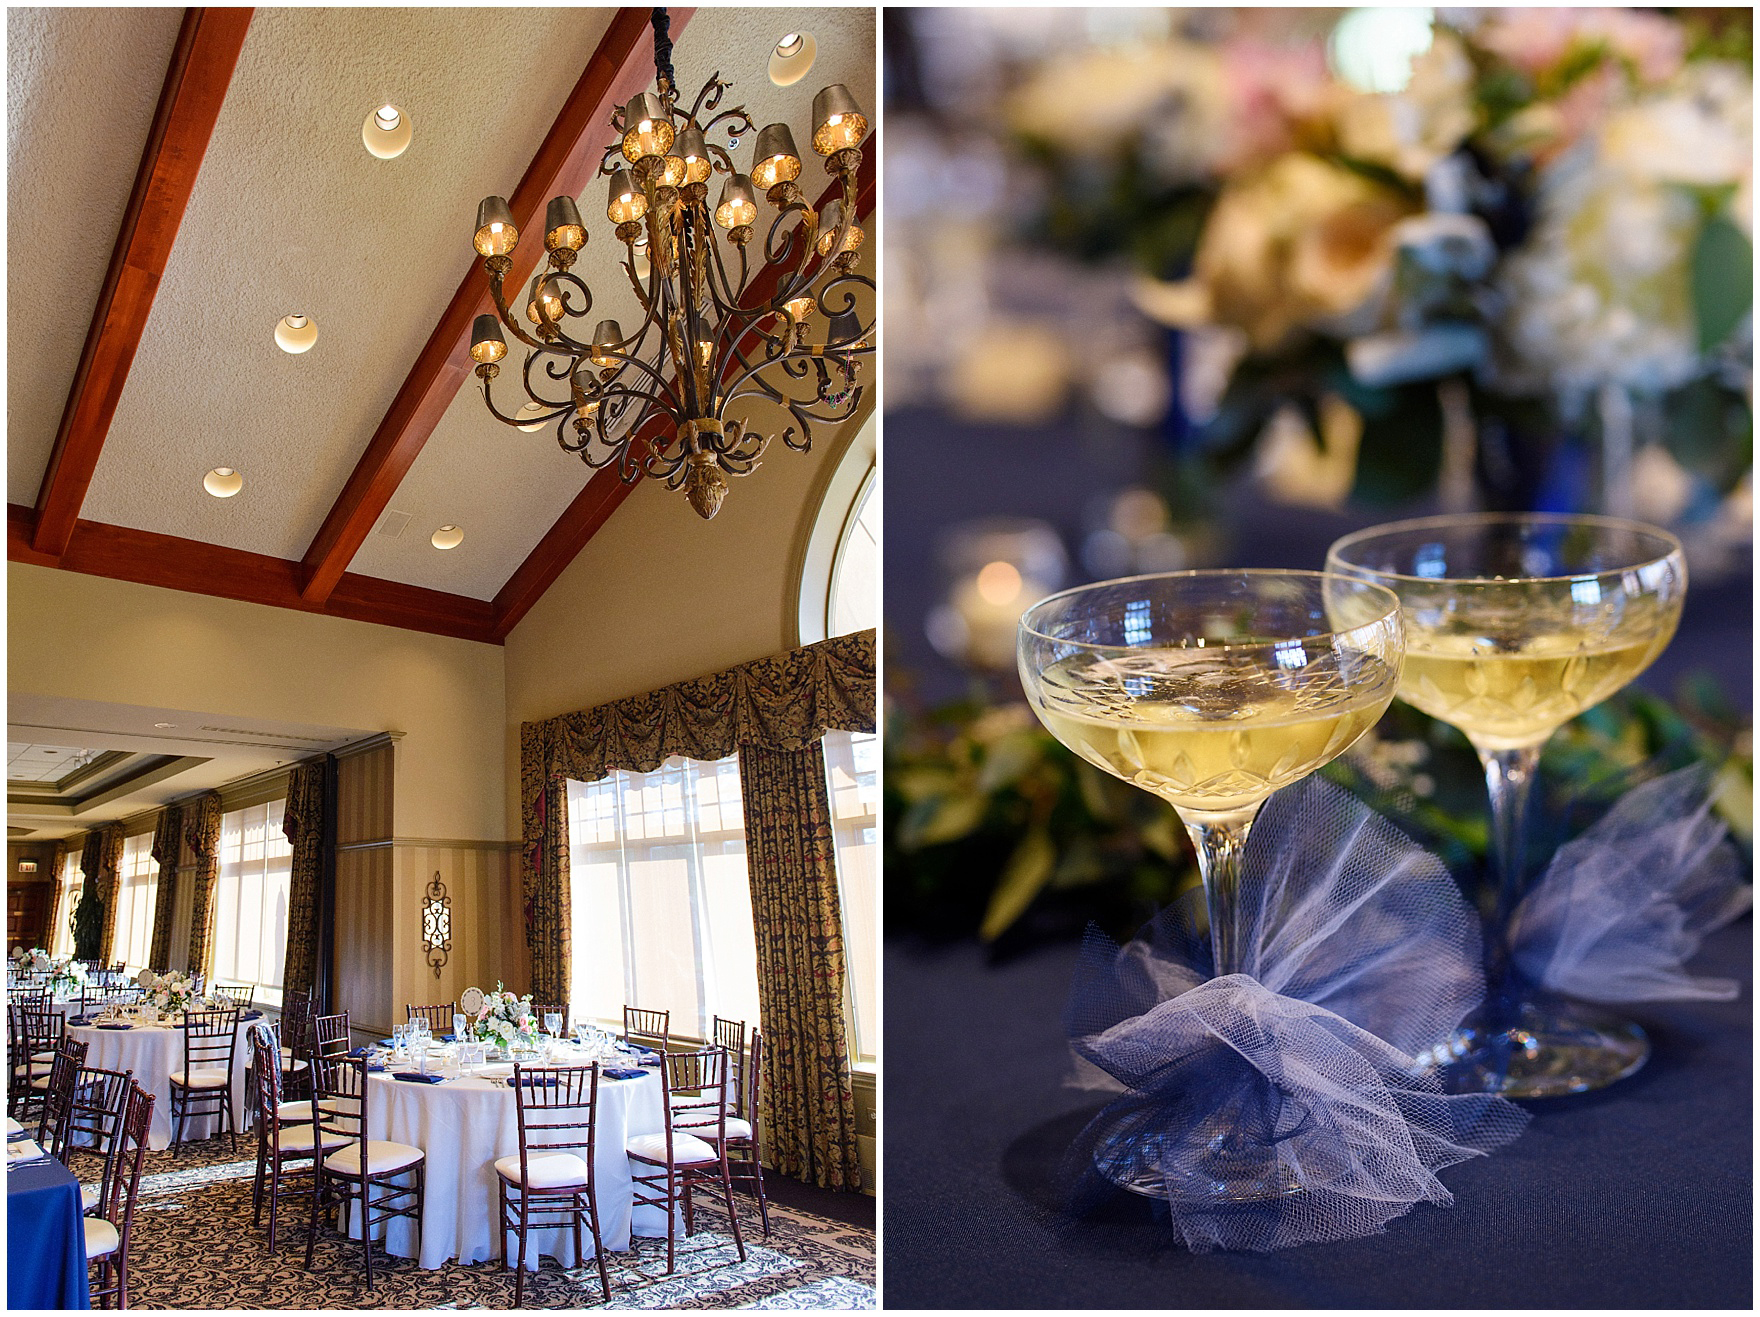 Details of the reception room set up for a Biltmore Country Club Barrington wedding.